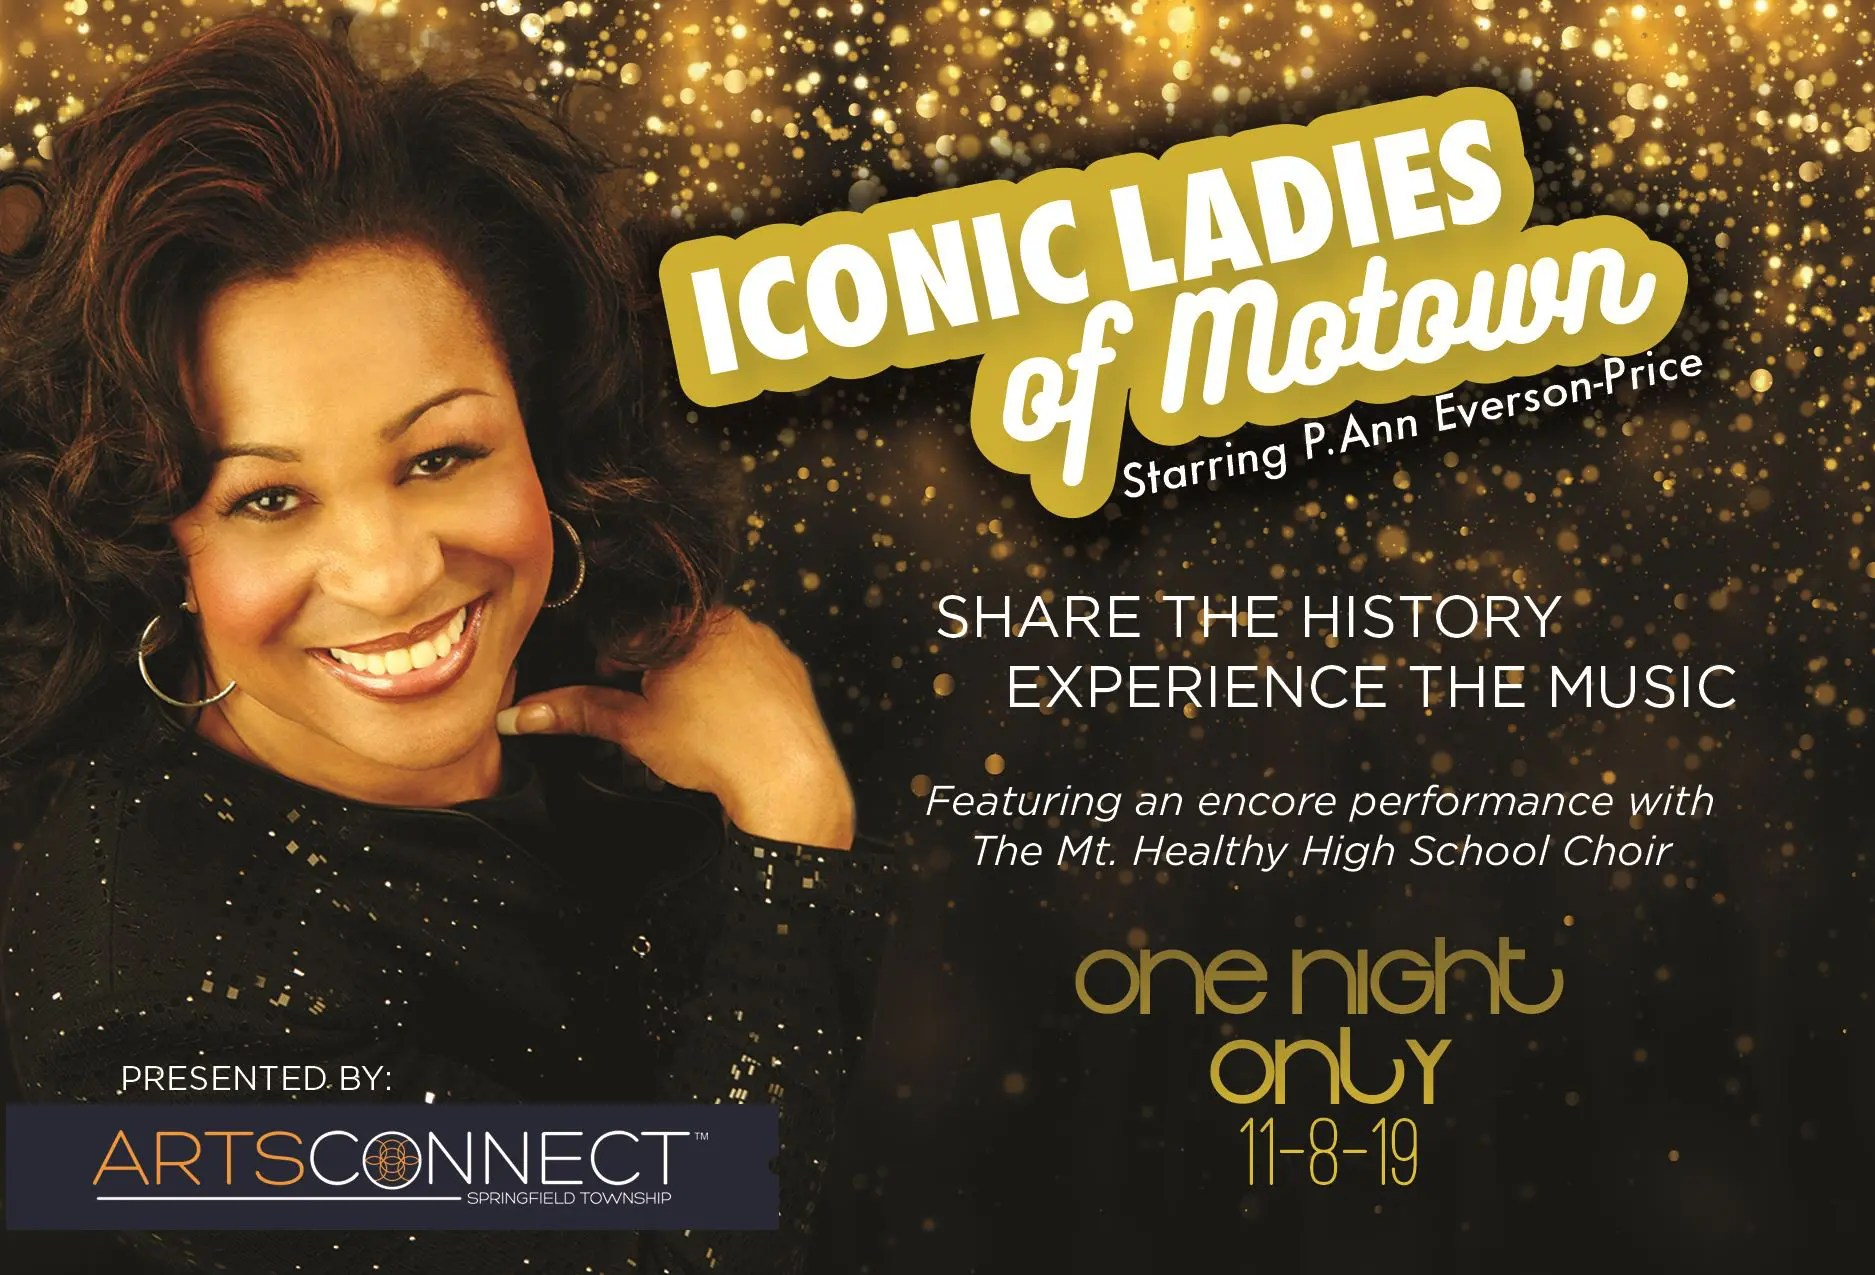 Iconic Ladies of Motown